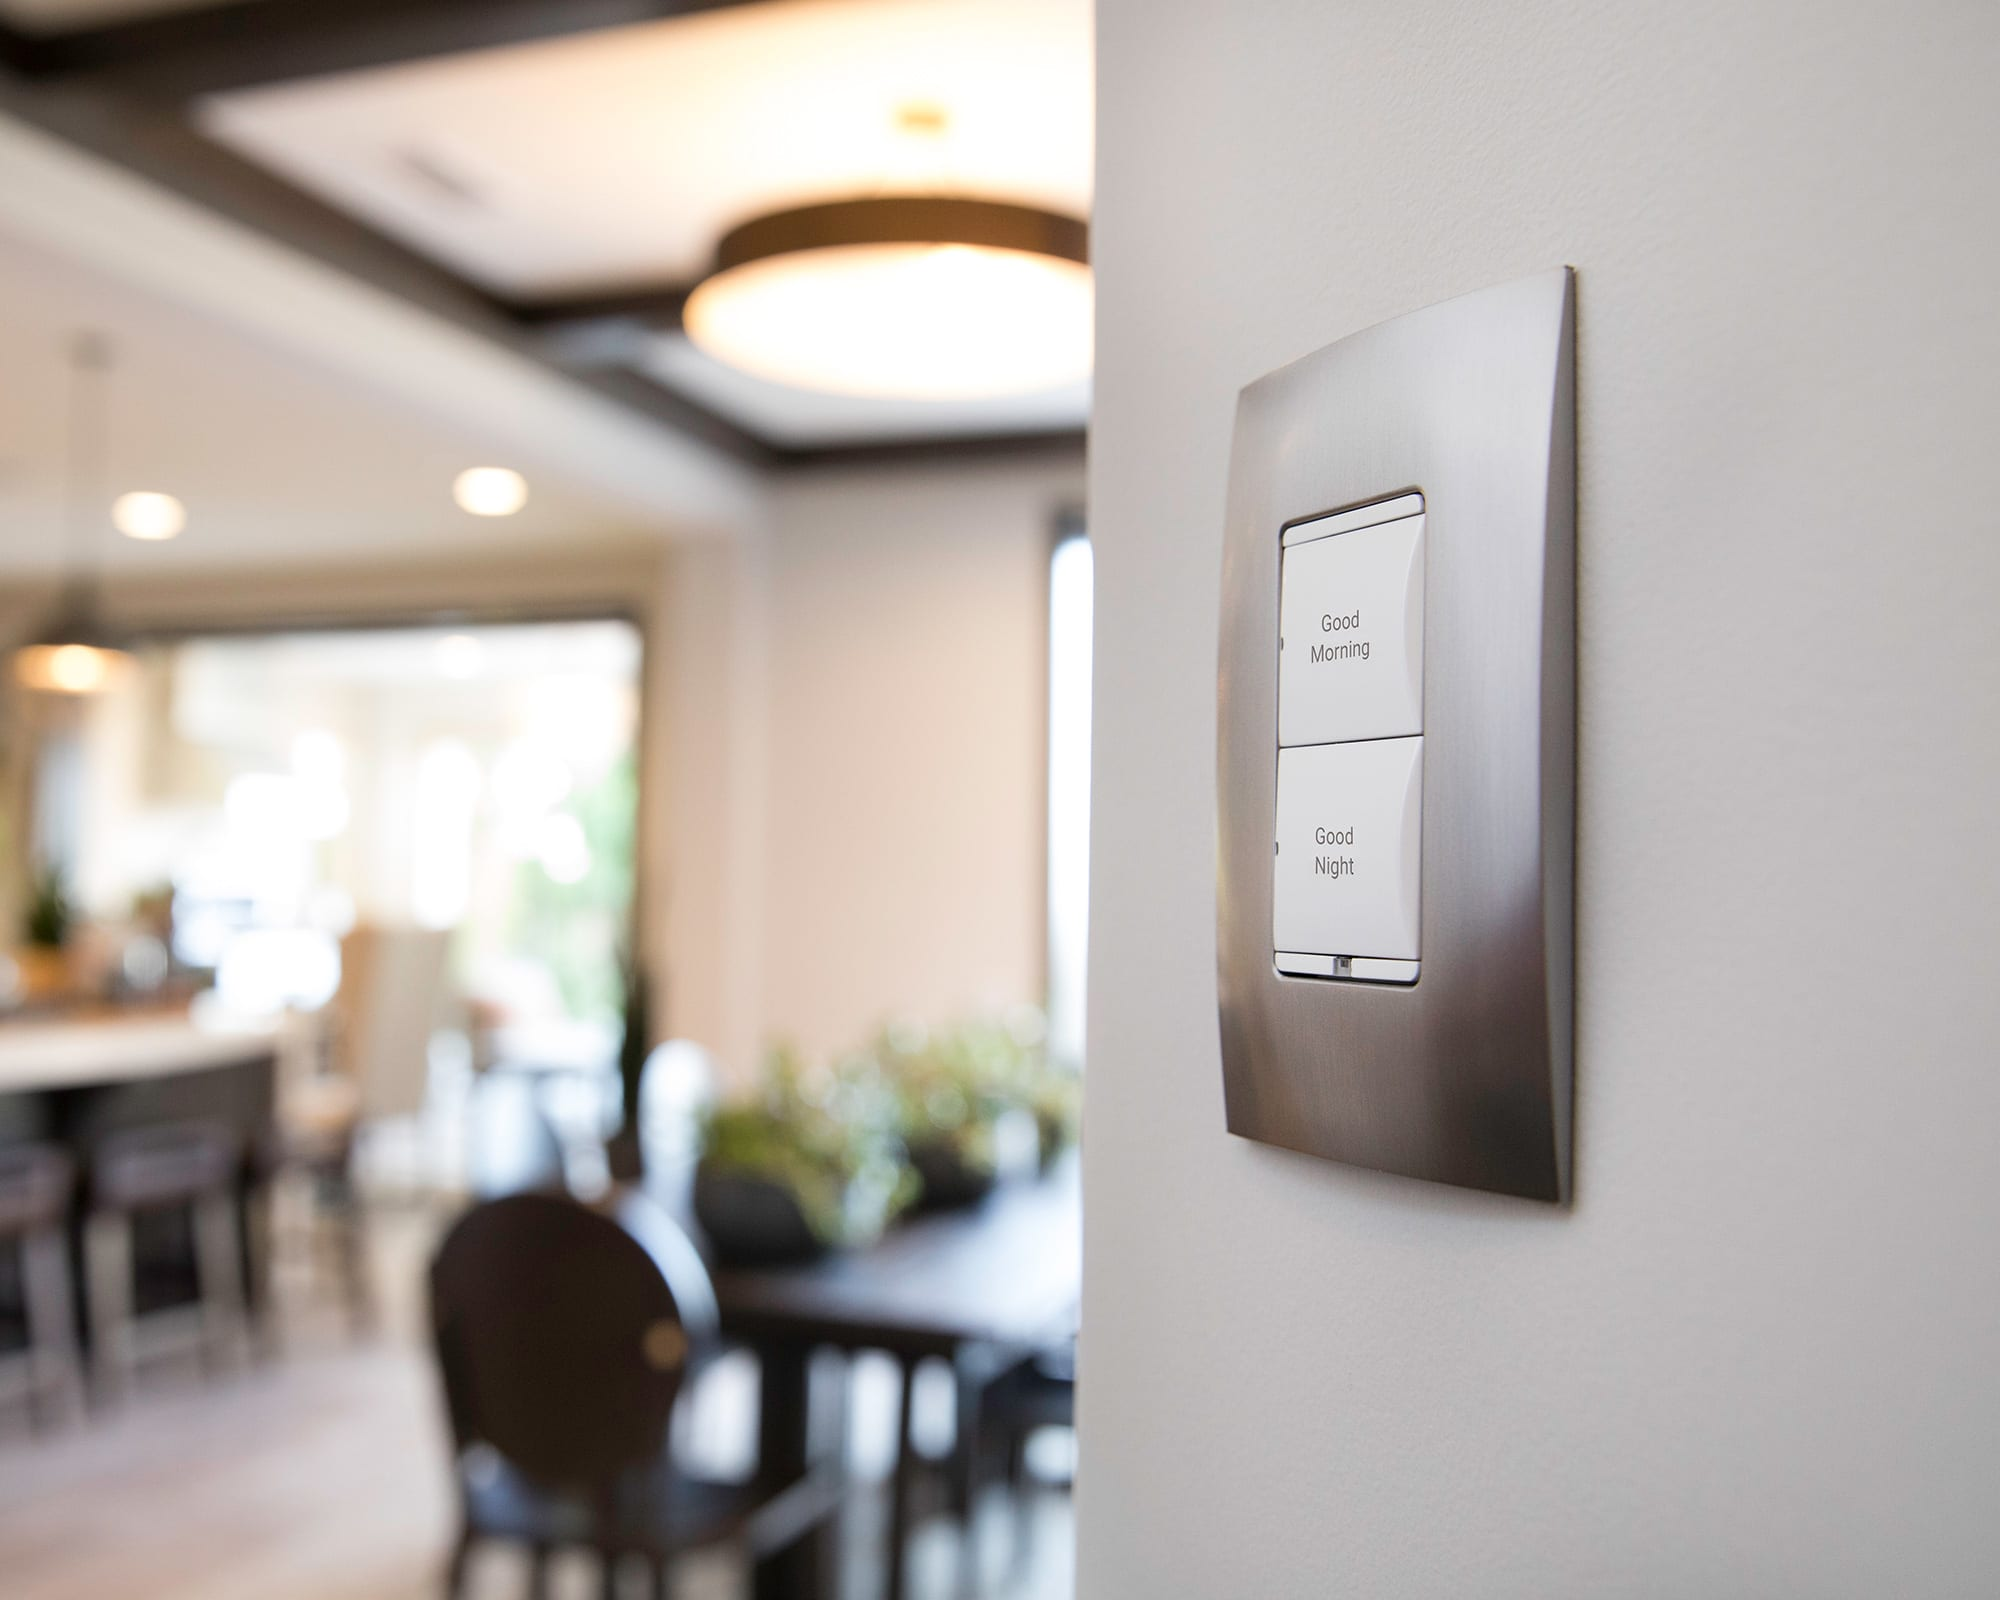 42428235e88 ... Configurable keypad with 'good morning' and 'good night' scene buttons.  Smart Home | Empowering You